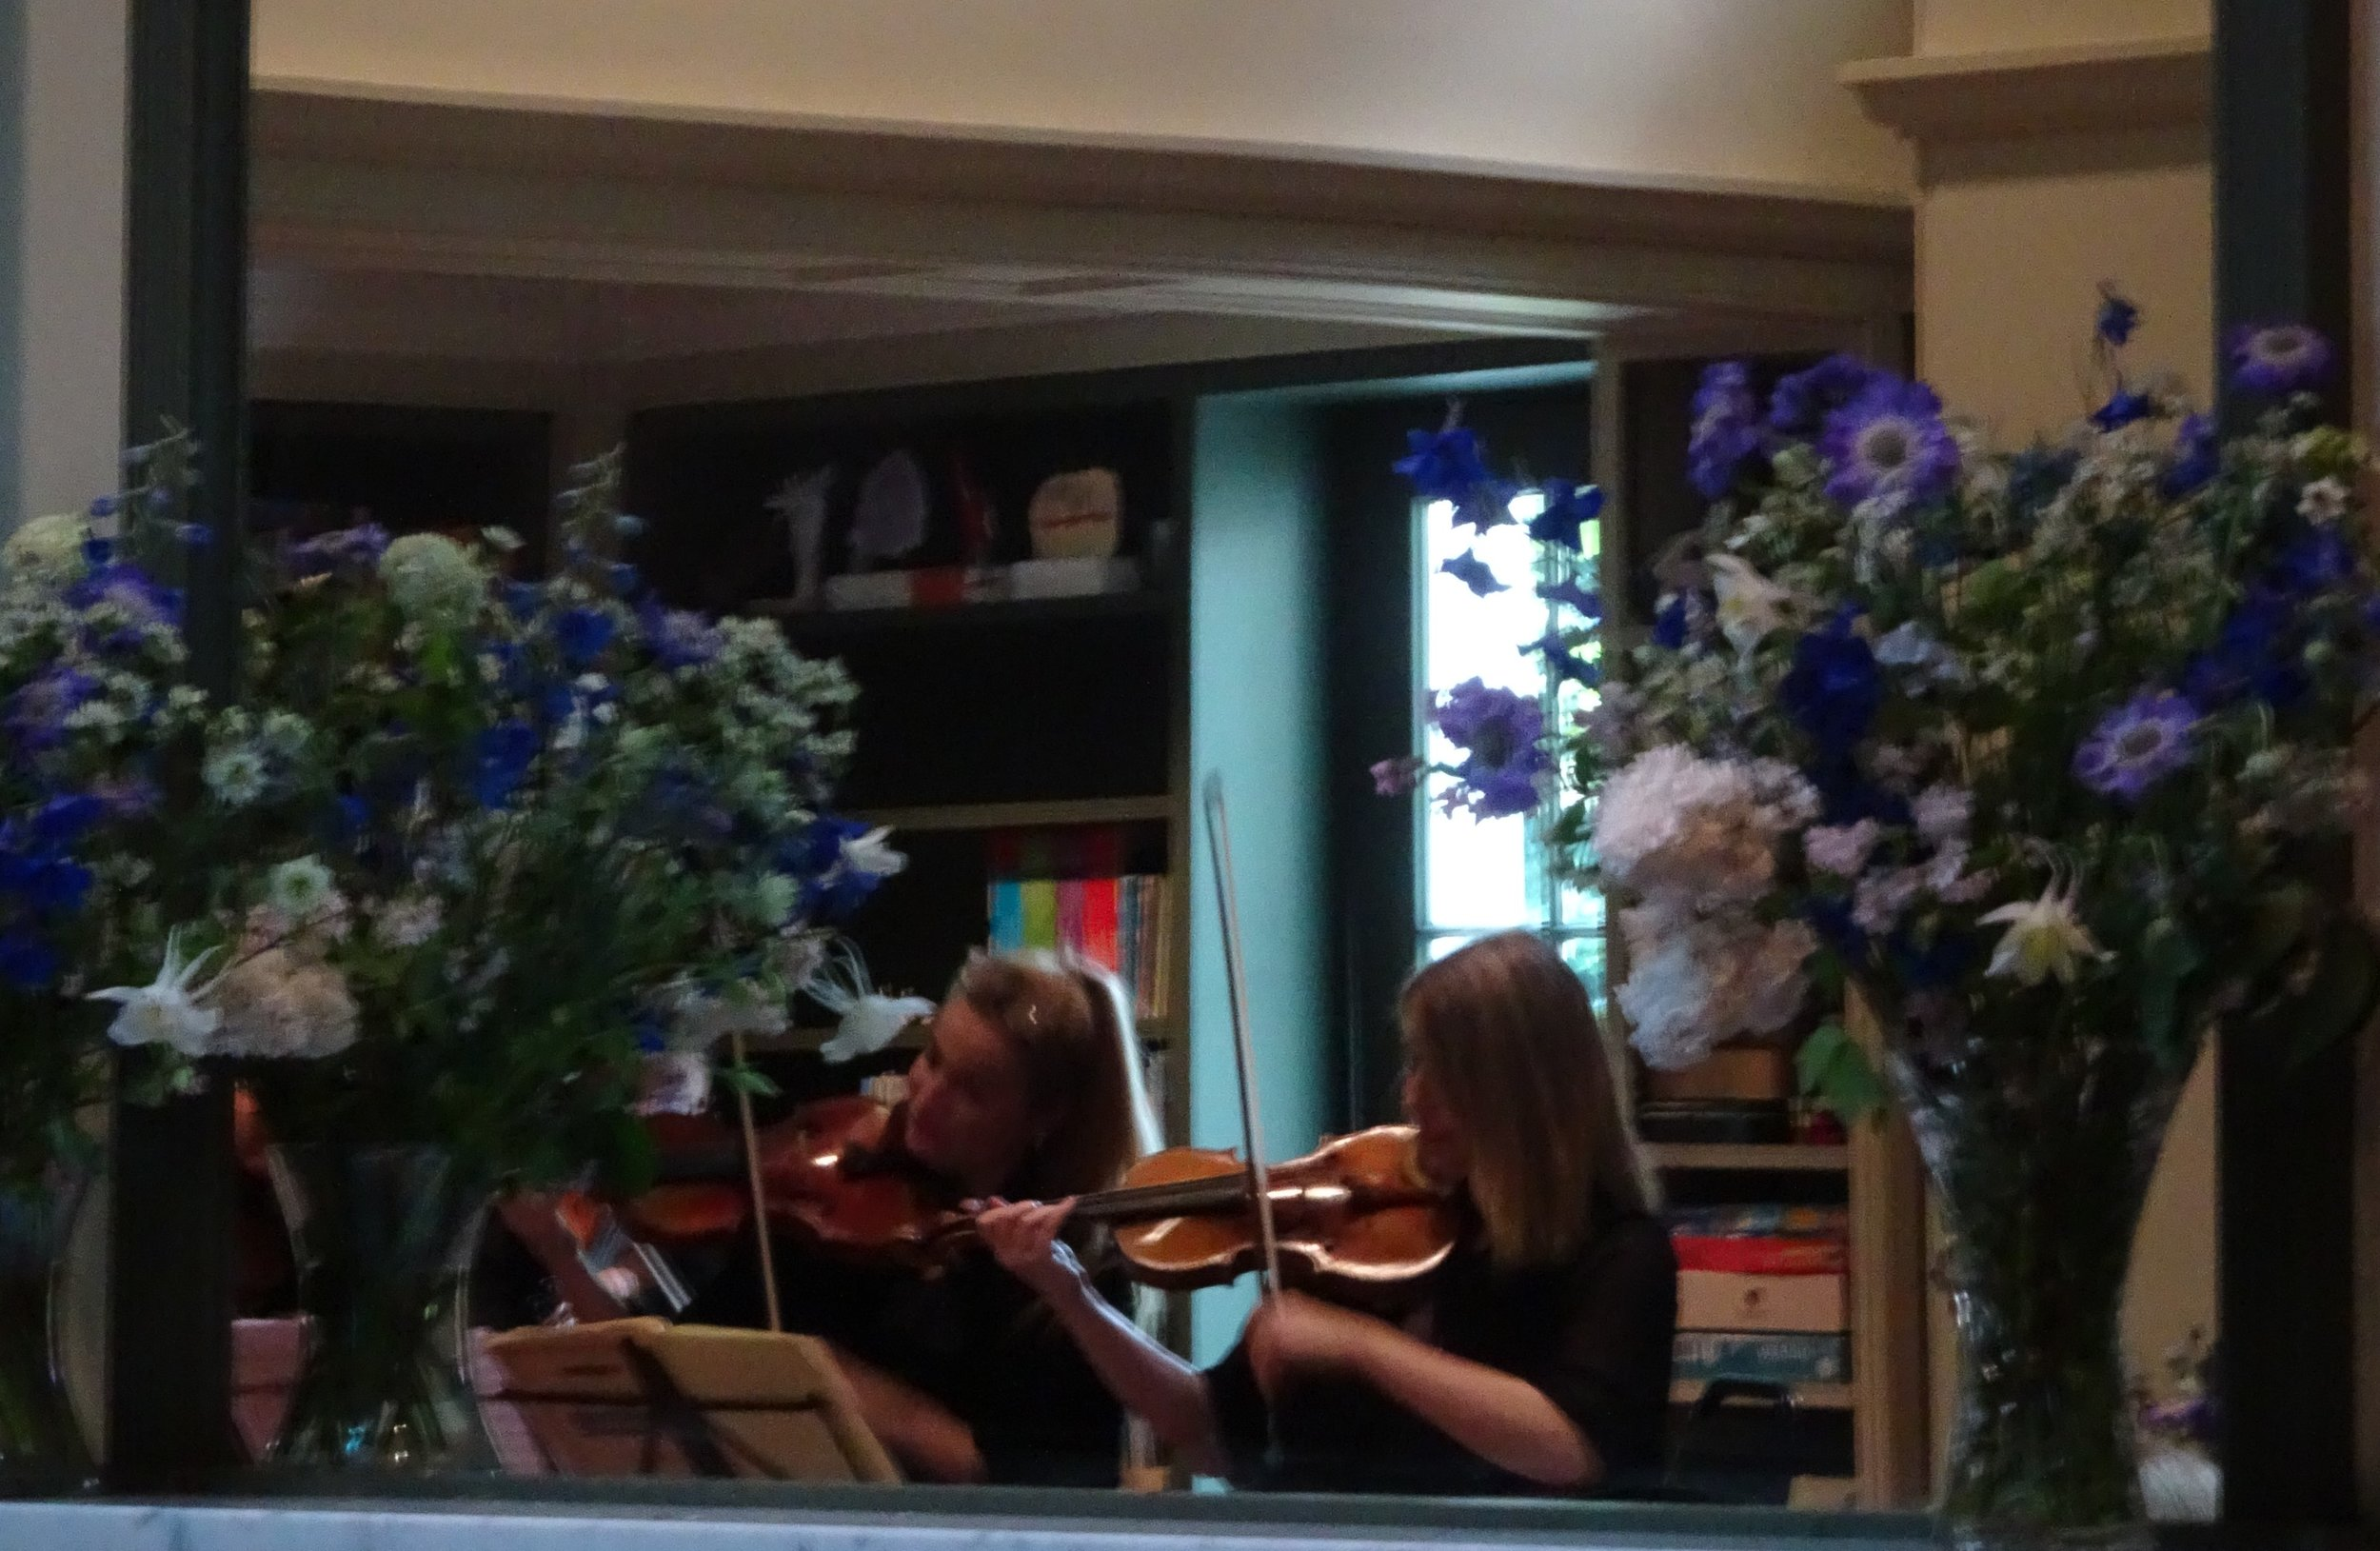 Violins and Flowers